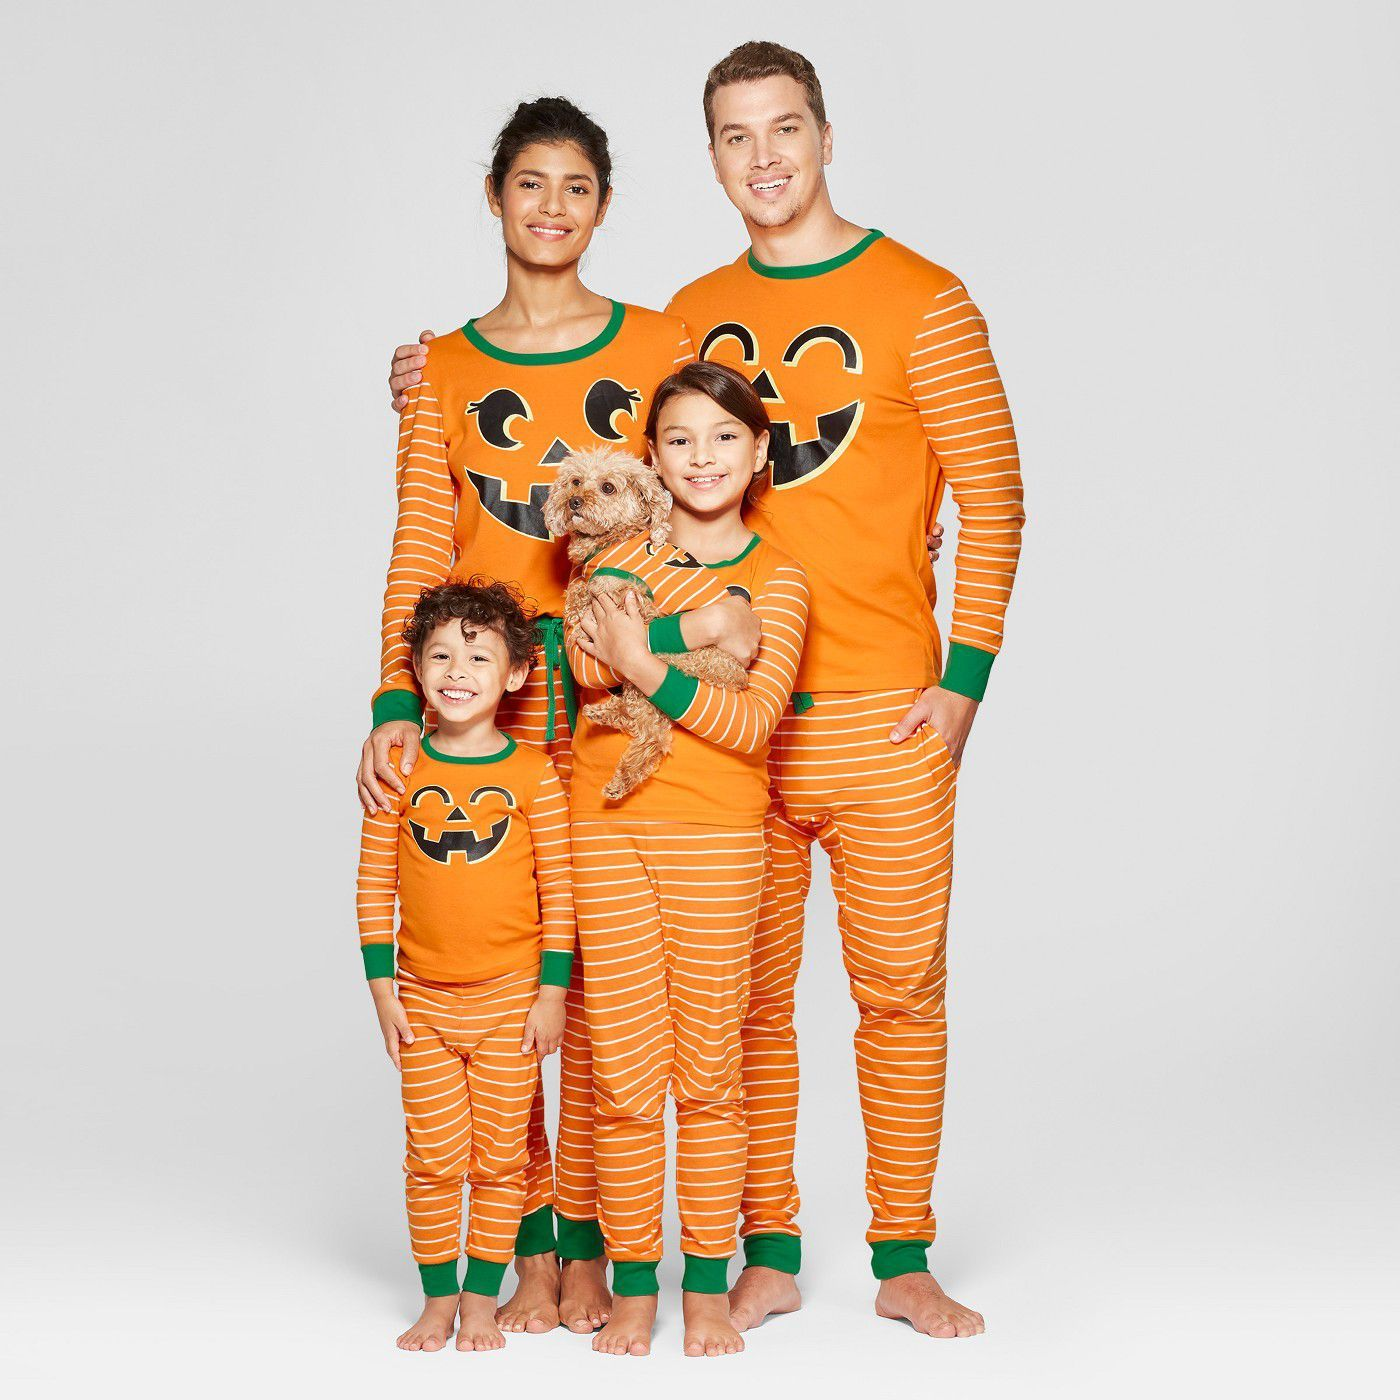 15+ Best Halloween Pajamas - Matching Halloween PJs for Families   Dogs 94870ced6